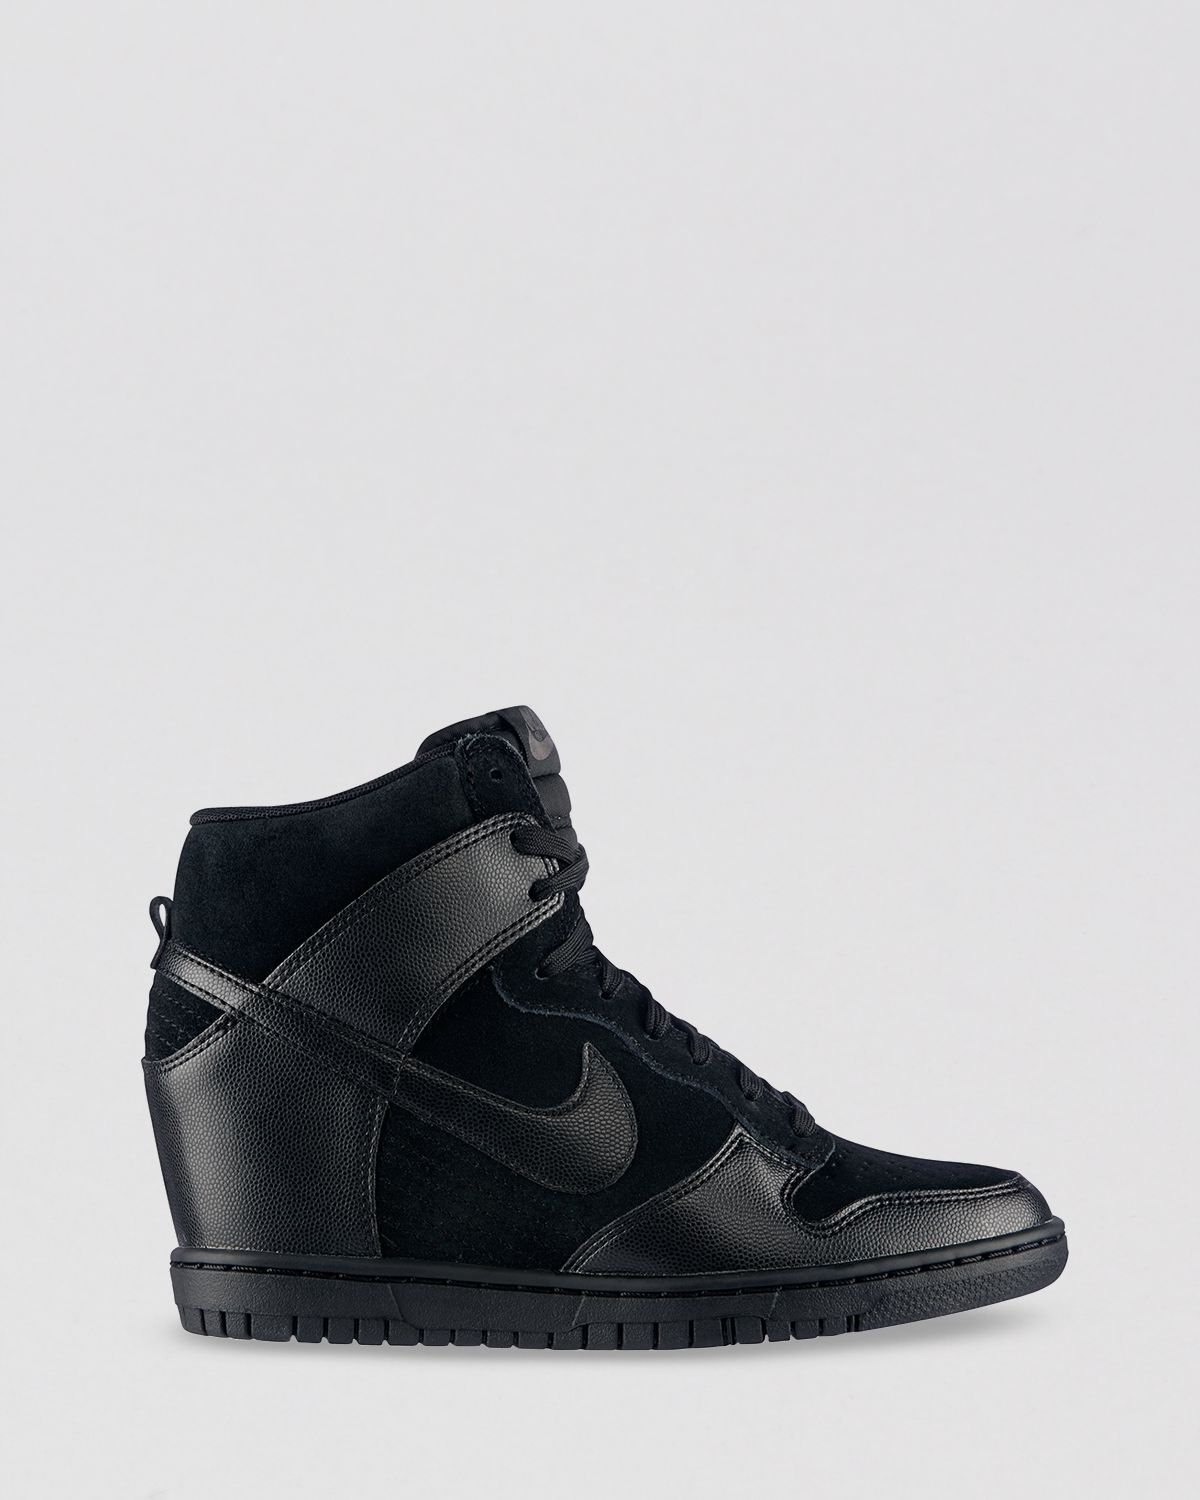 Nike High Top Lace Up Sneakers Womens Dunk Sky Hi in Black ...